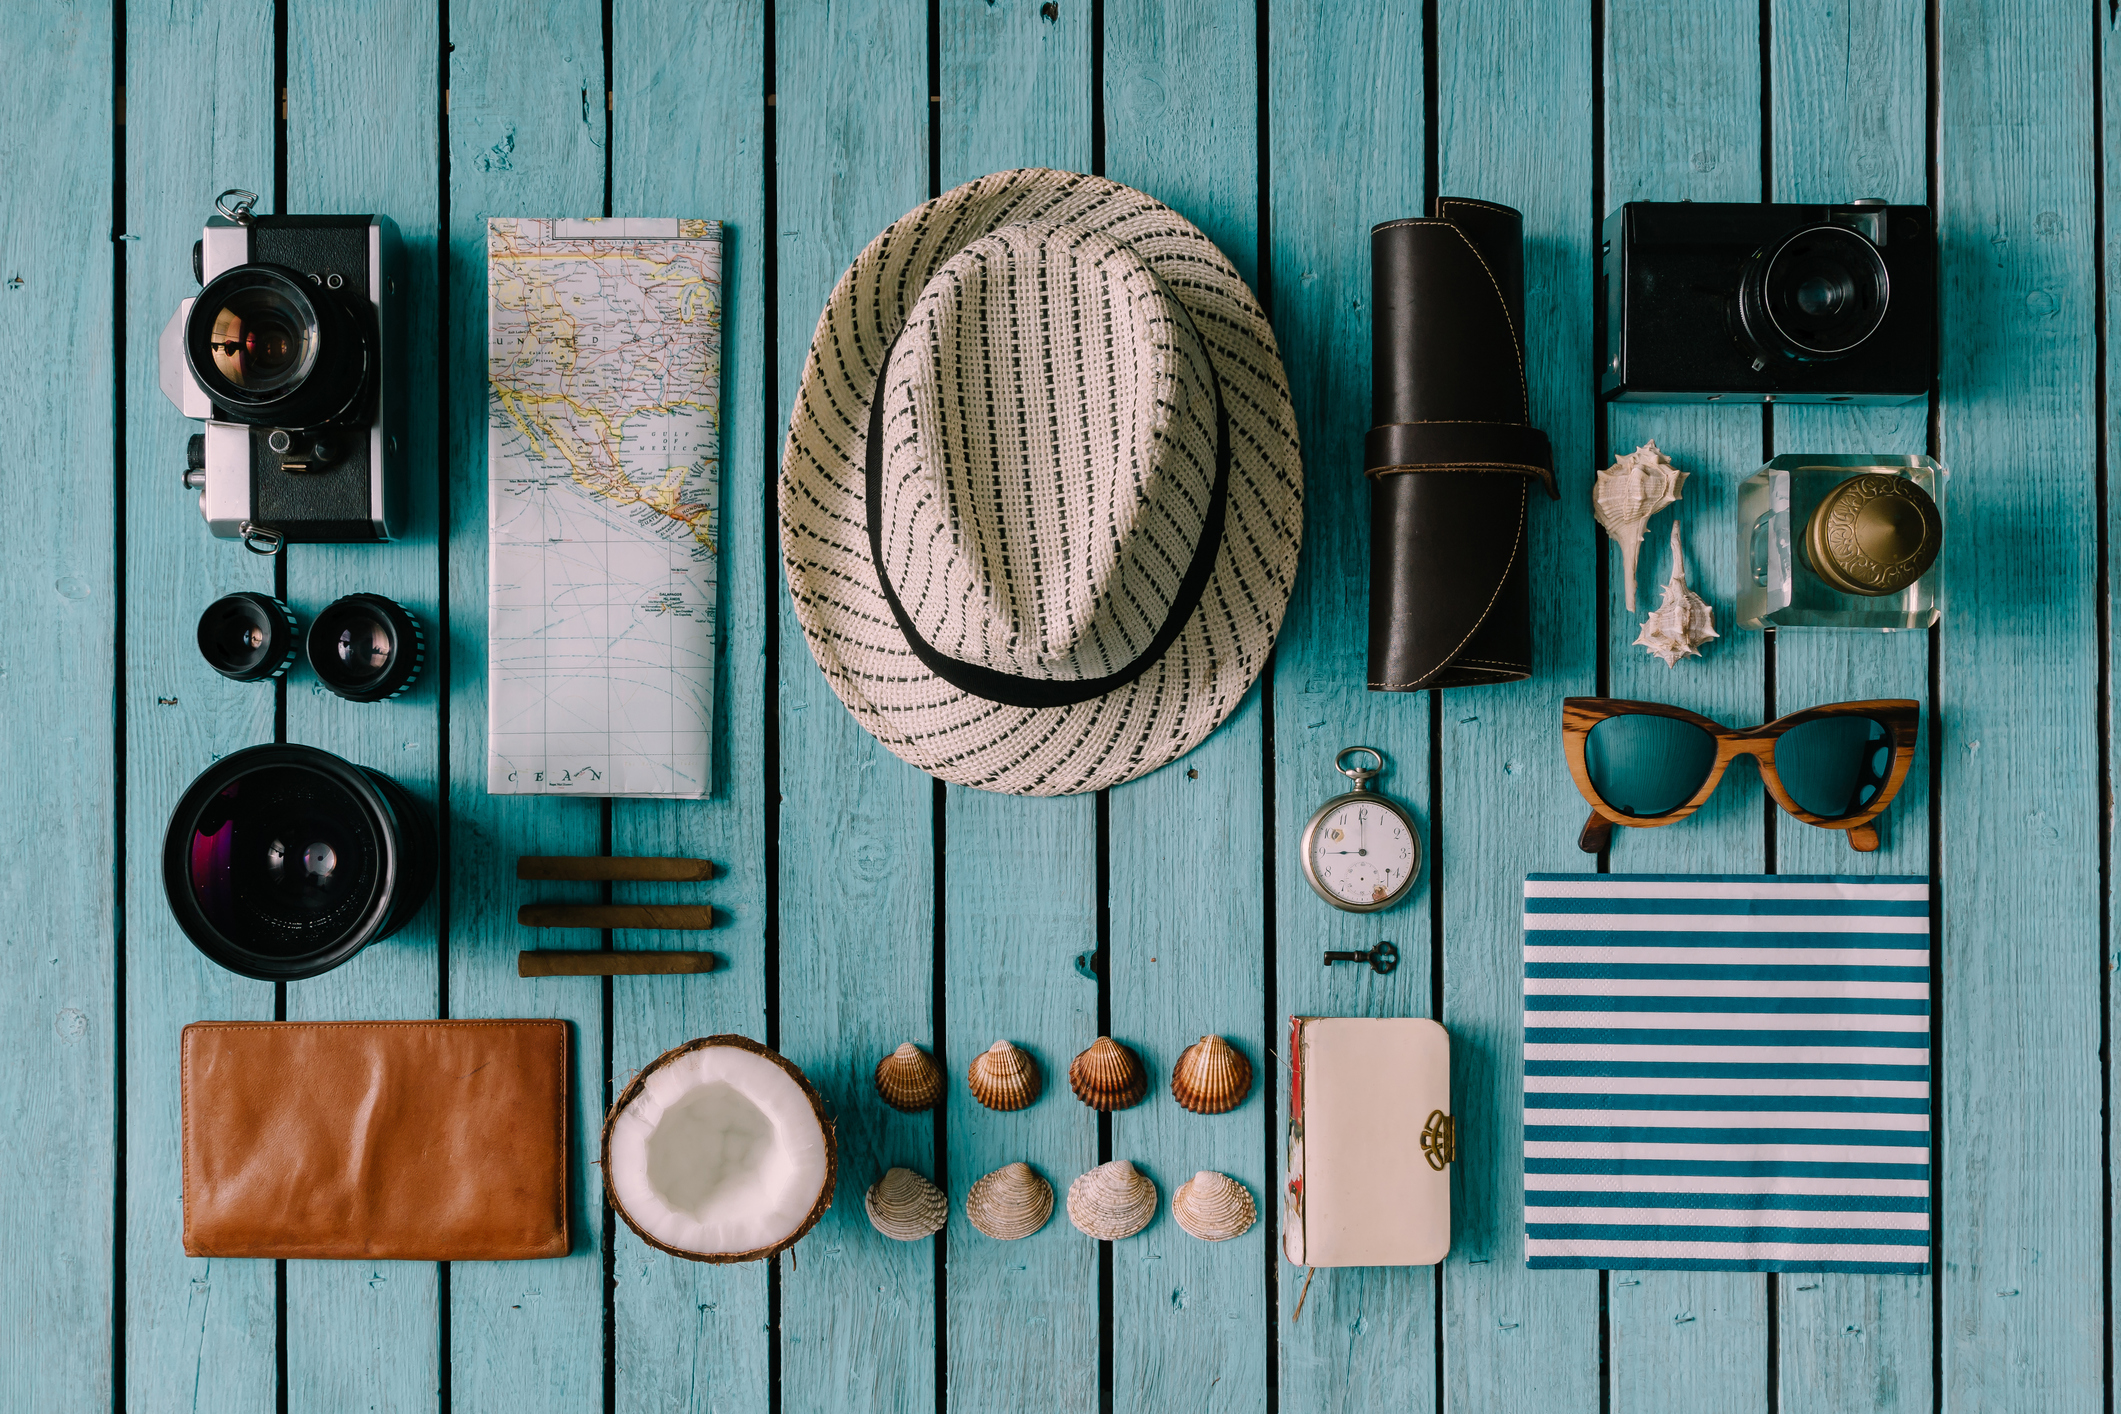 Summer vacation is a great time to get organized!